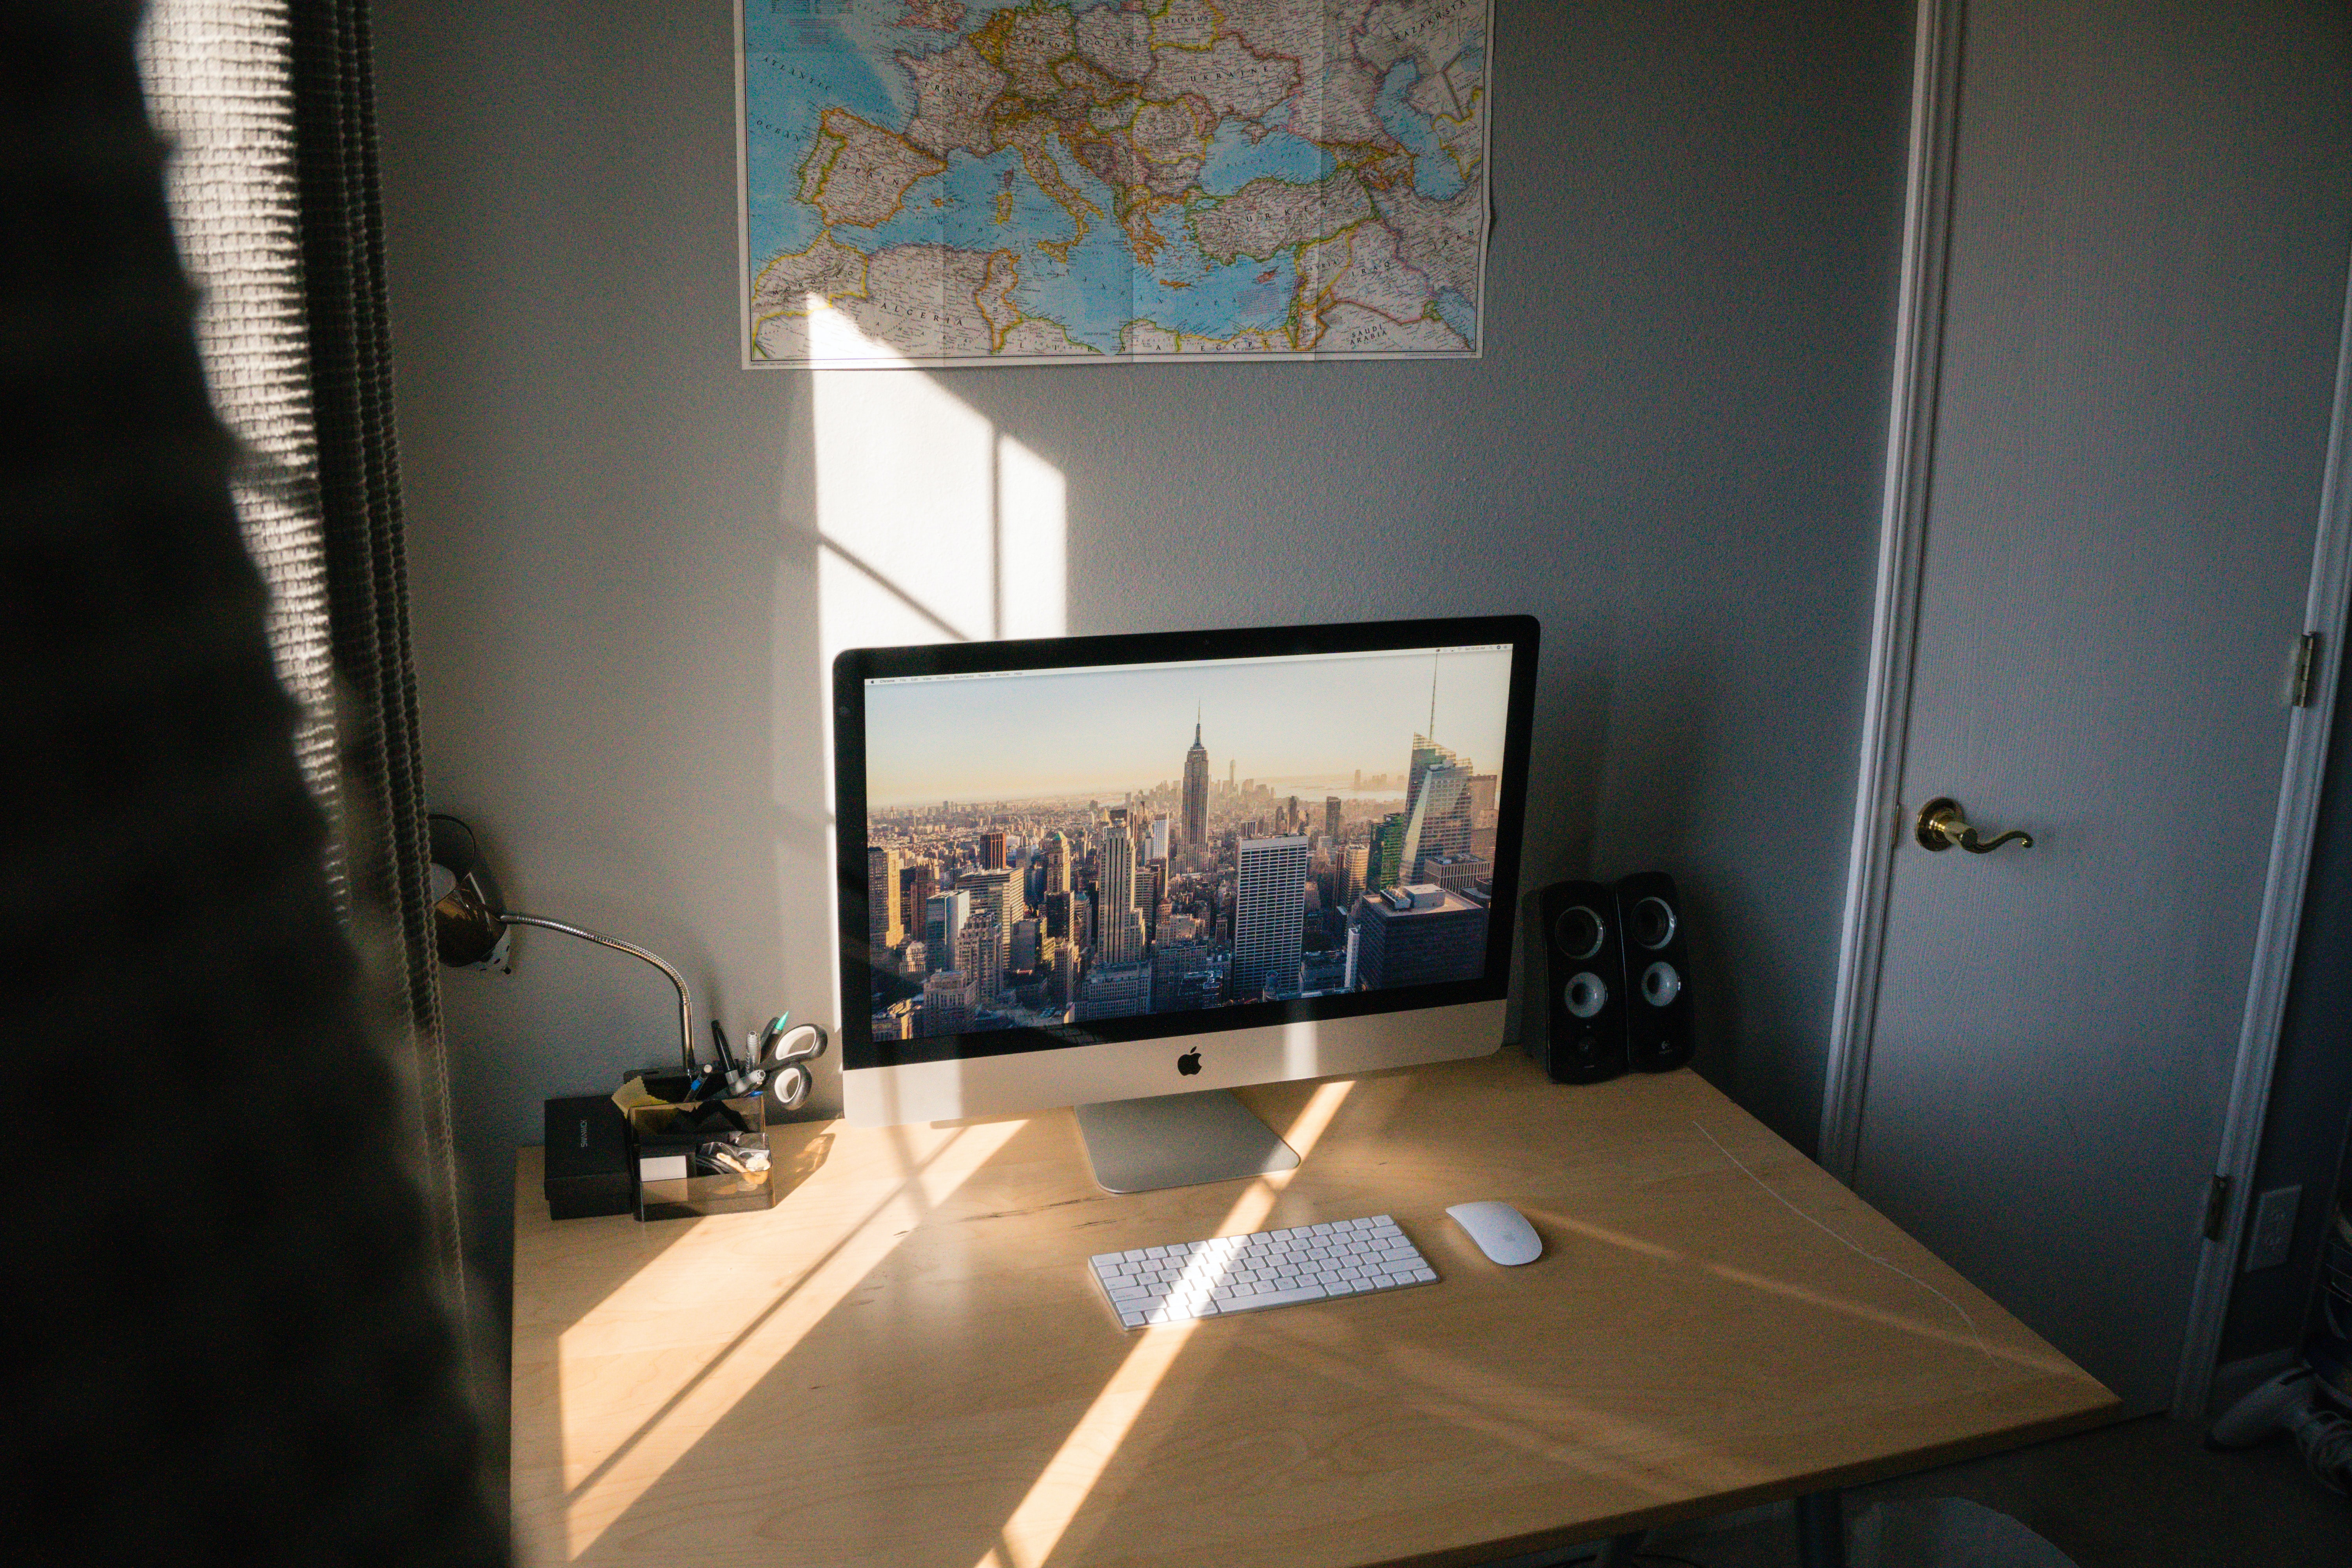 turned on silver iMac on beige wooden desk